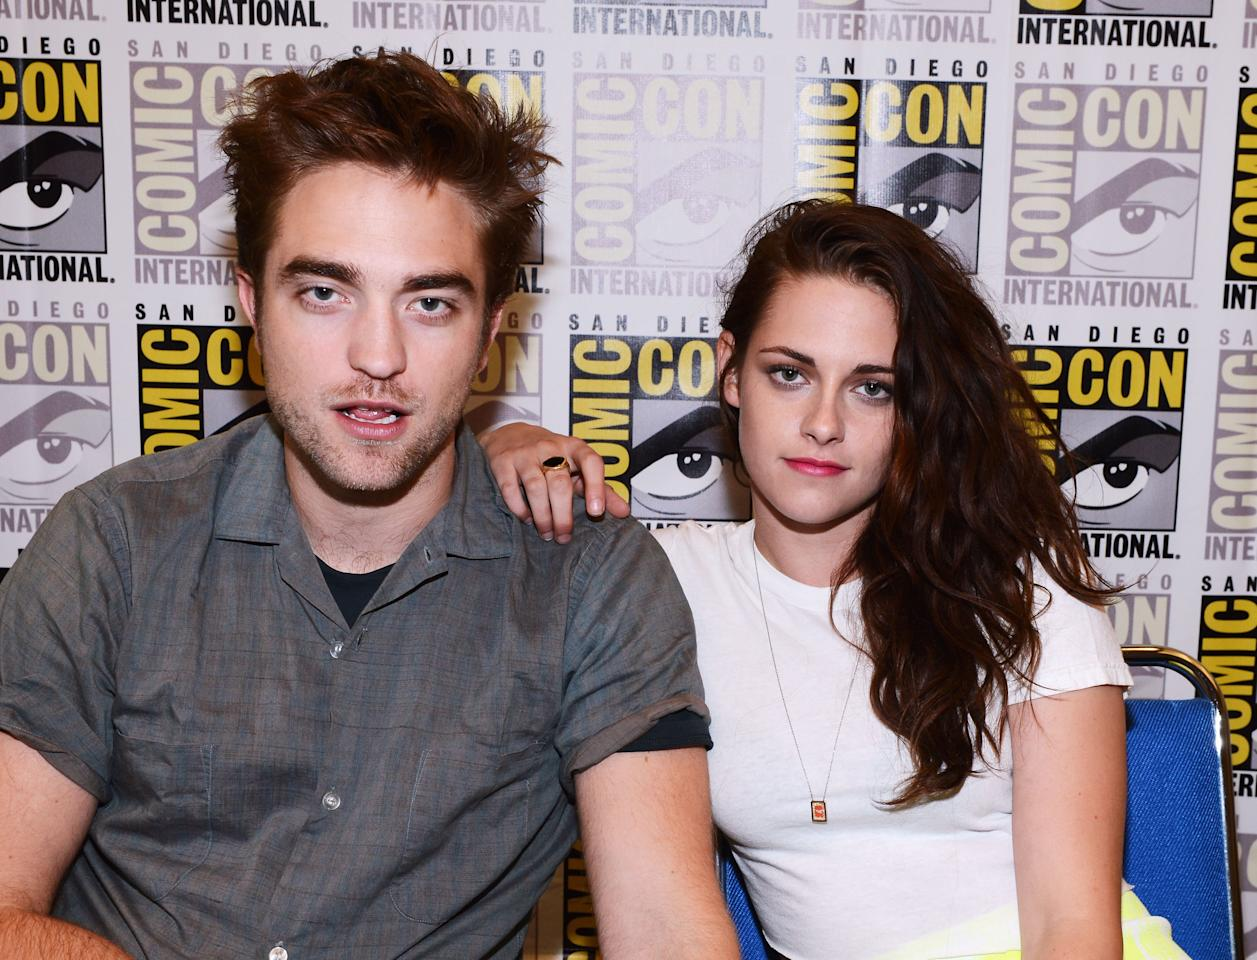 "SAN DIEGO, CA - JULY 12: Actors Robert Pattinson (L) and Kristen Stewart attend ""The Twilight Saga: Breaking Dawn Part 2"" during Comic-Con International 2012 at San Diego Convention Center on July 12, 2012 in San Diego, California.  (Photo by Michael Buckner/Getty Images for Lionsgate)"